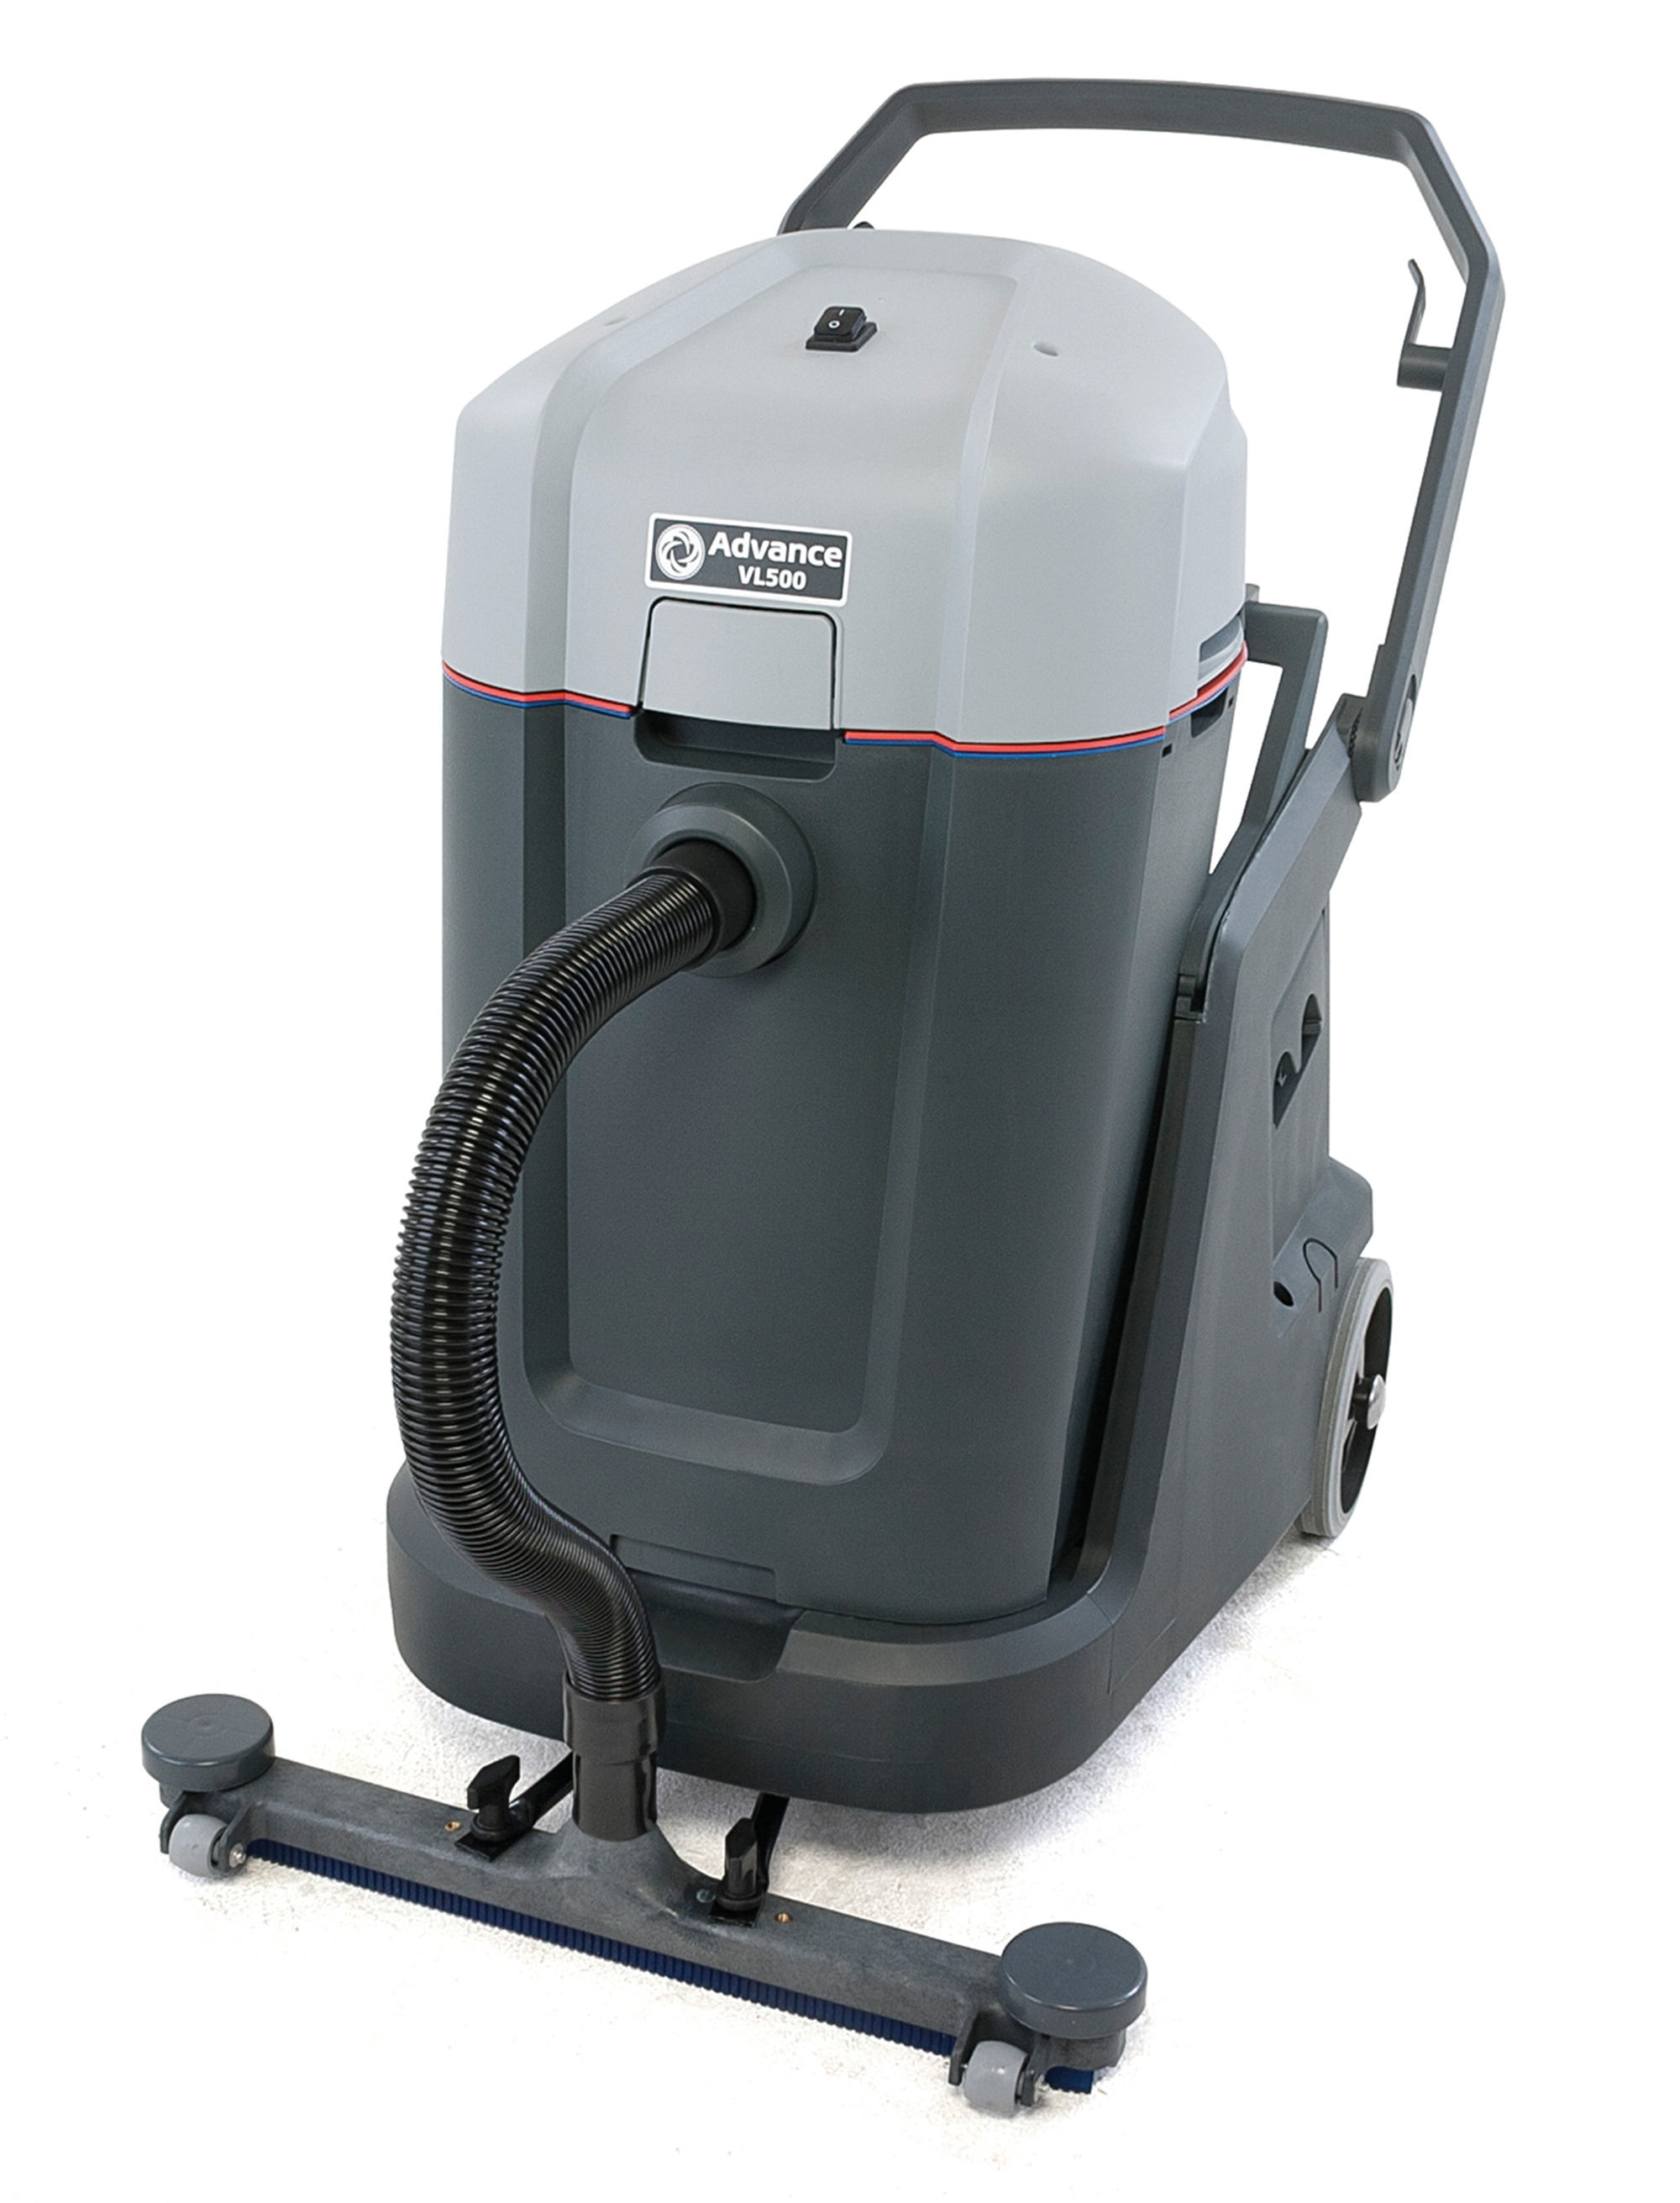 Product, Carpet Cleaning, Commercial Vacuum Cleaners, Wet and dry Vacuum Cleaners, Nilfisk, VL500 55-14 GAL-COMPLETE